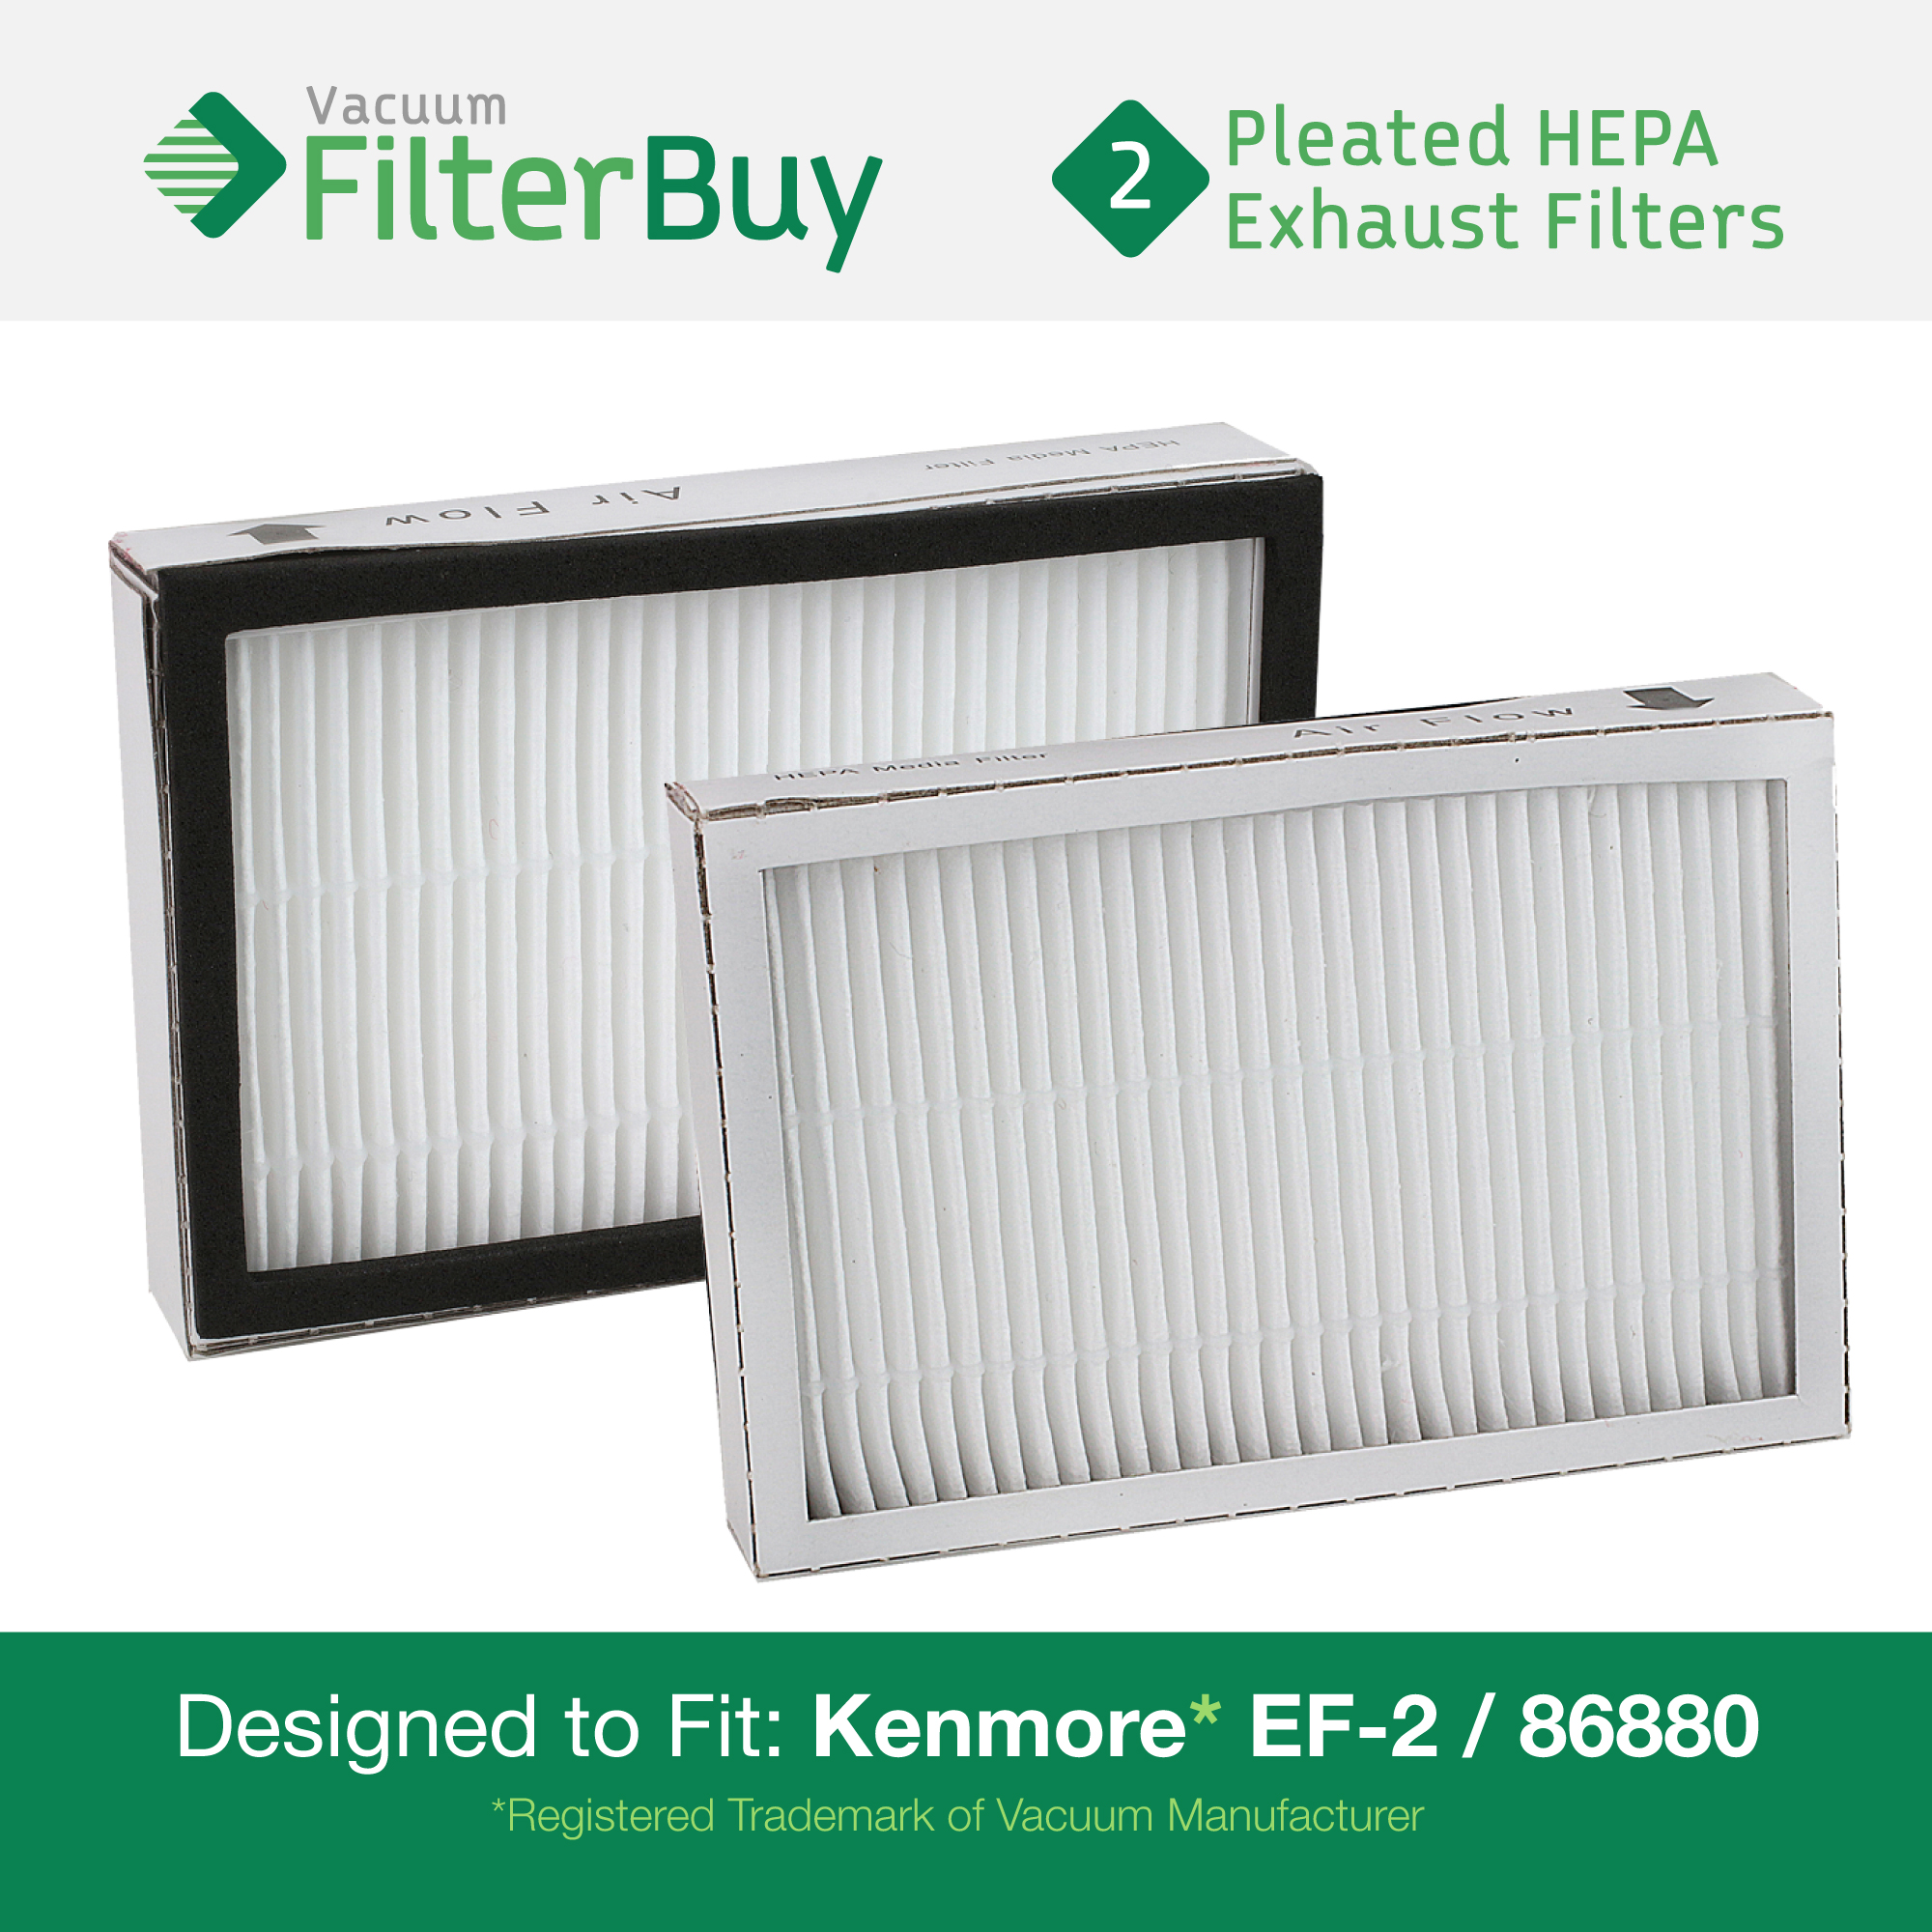 2 - Kenmore EF-2 86880 Exhaust Vacuum HEPA Filters. Designed by FilterBuy to replace Sears Kenmore Part # 20-86880 (86880), 40320, EF2, 610445. Also replaces Panasonic MC-V194H.